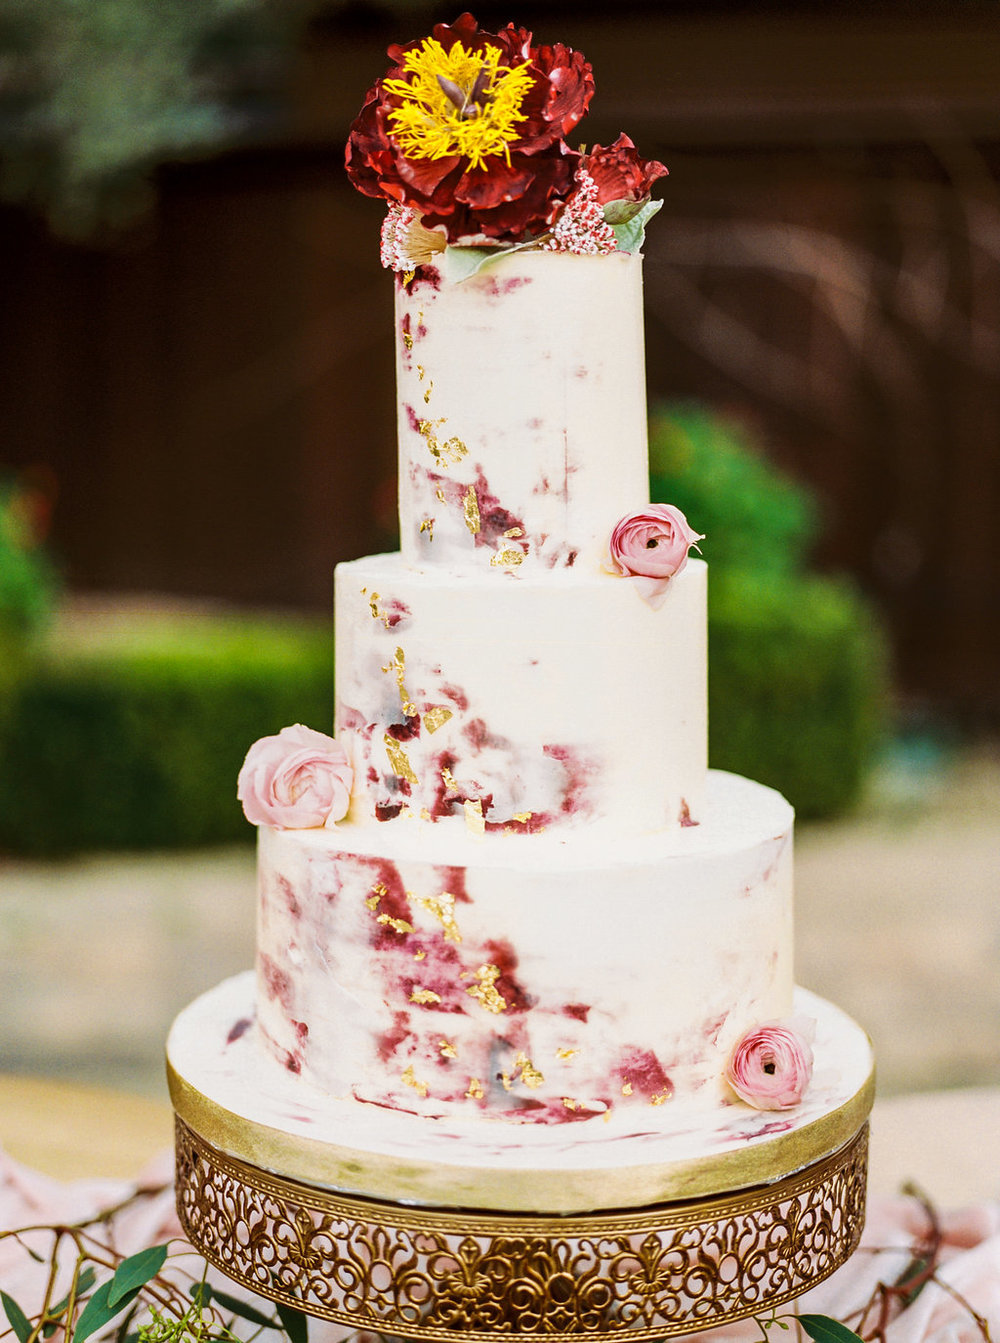 Photo by: Olivia Richards Photography  Cake Design: The Cakeldy